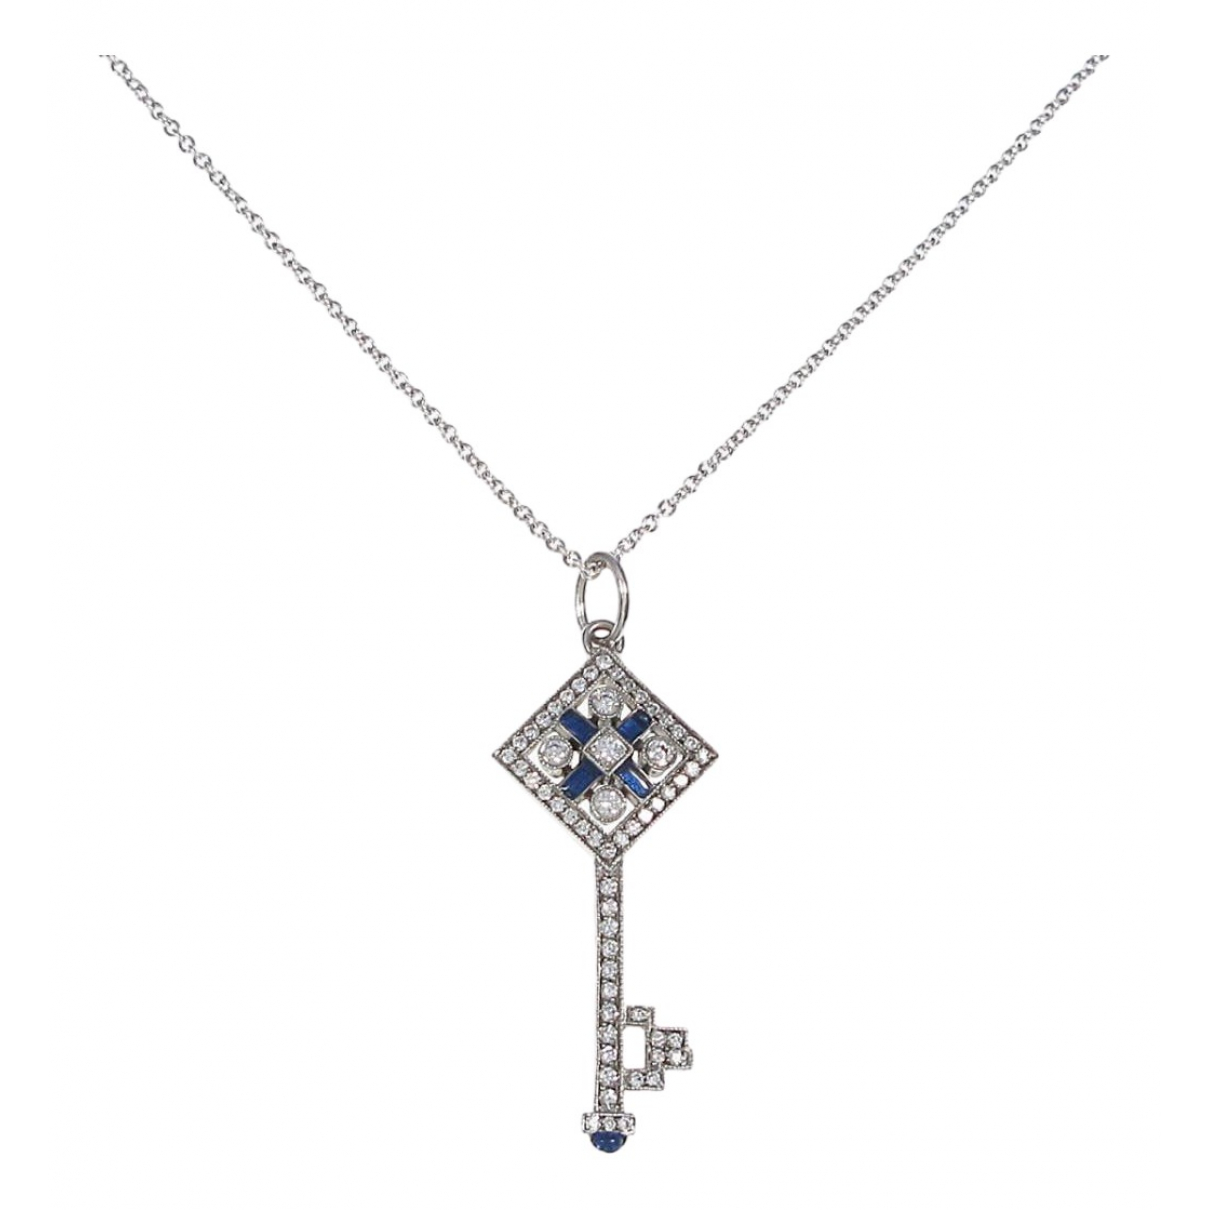 Tiffany & Co Cles Tiffany Kette in Weissgold